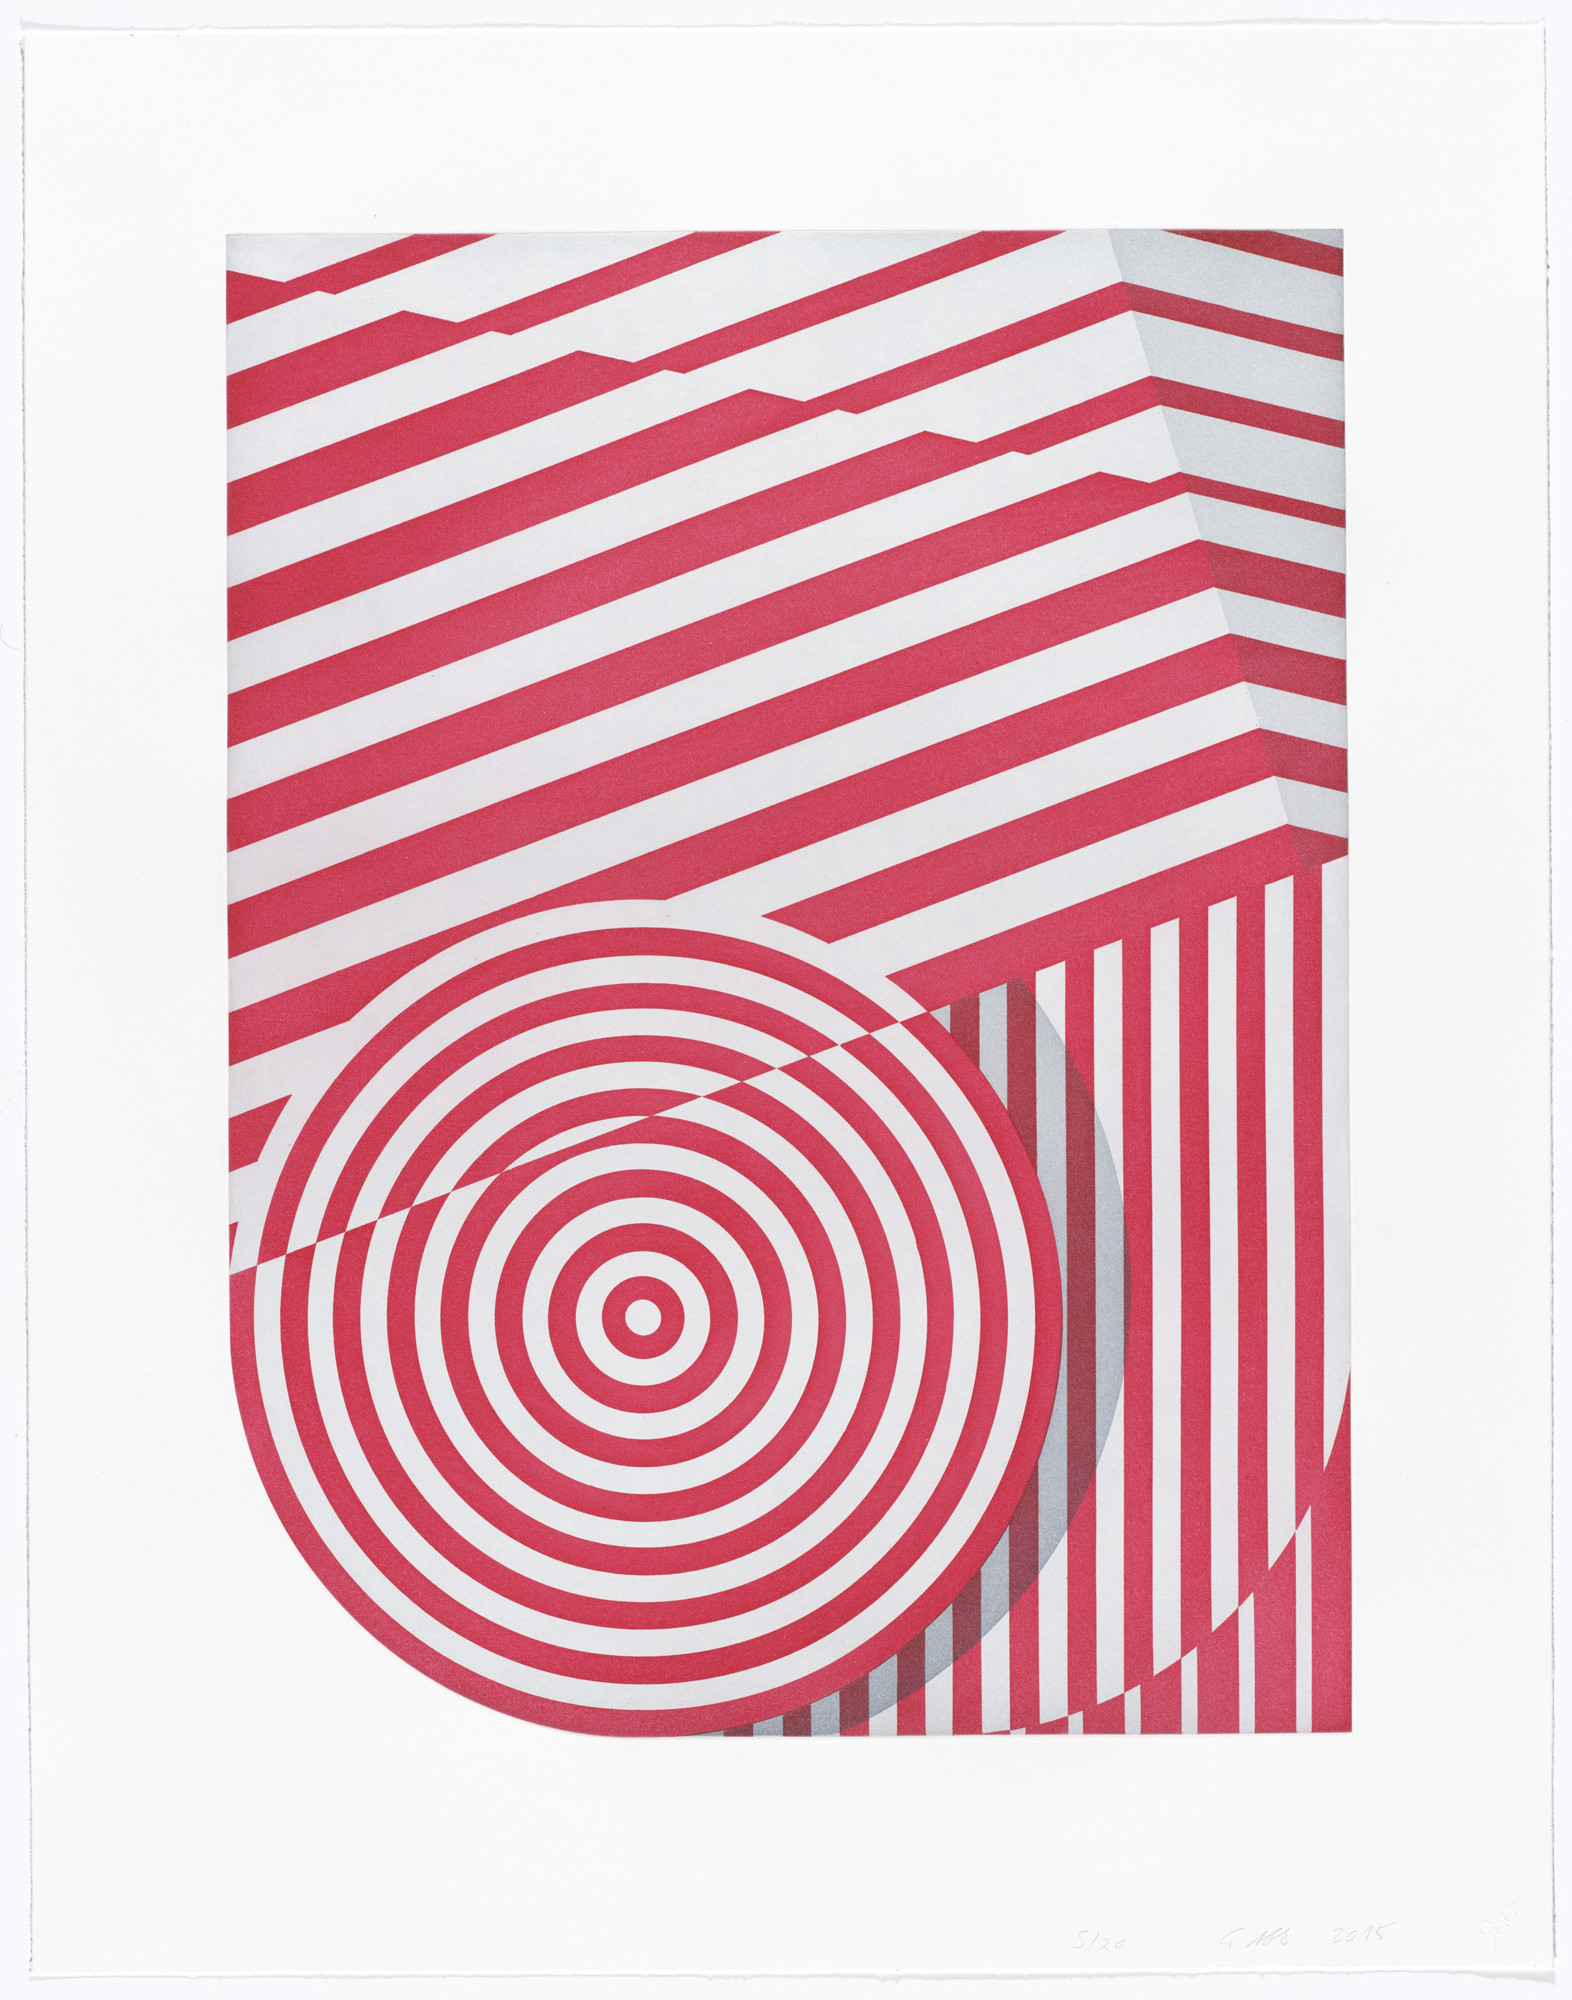 Tomma Abts. Untitled (big circle). 2015